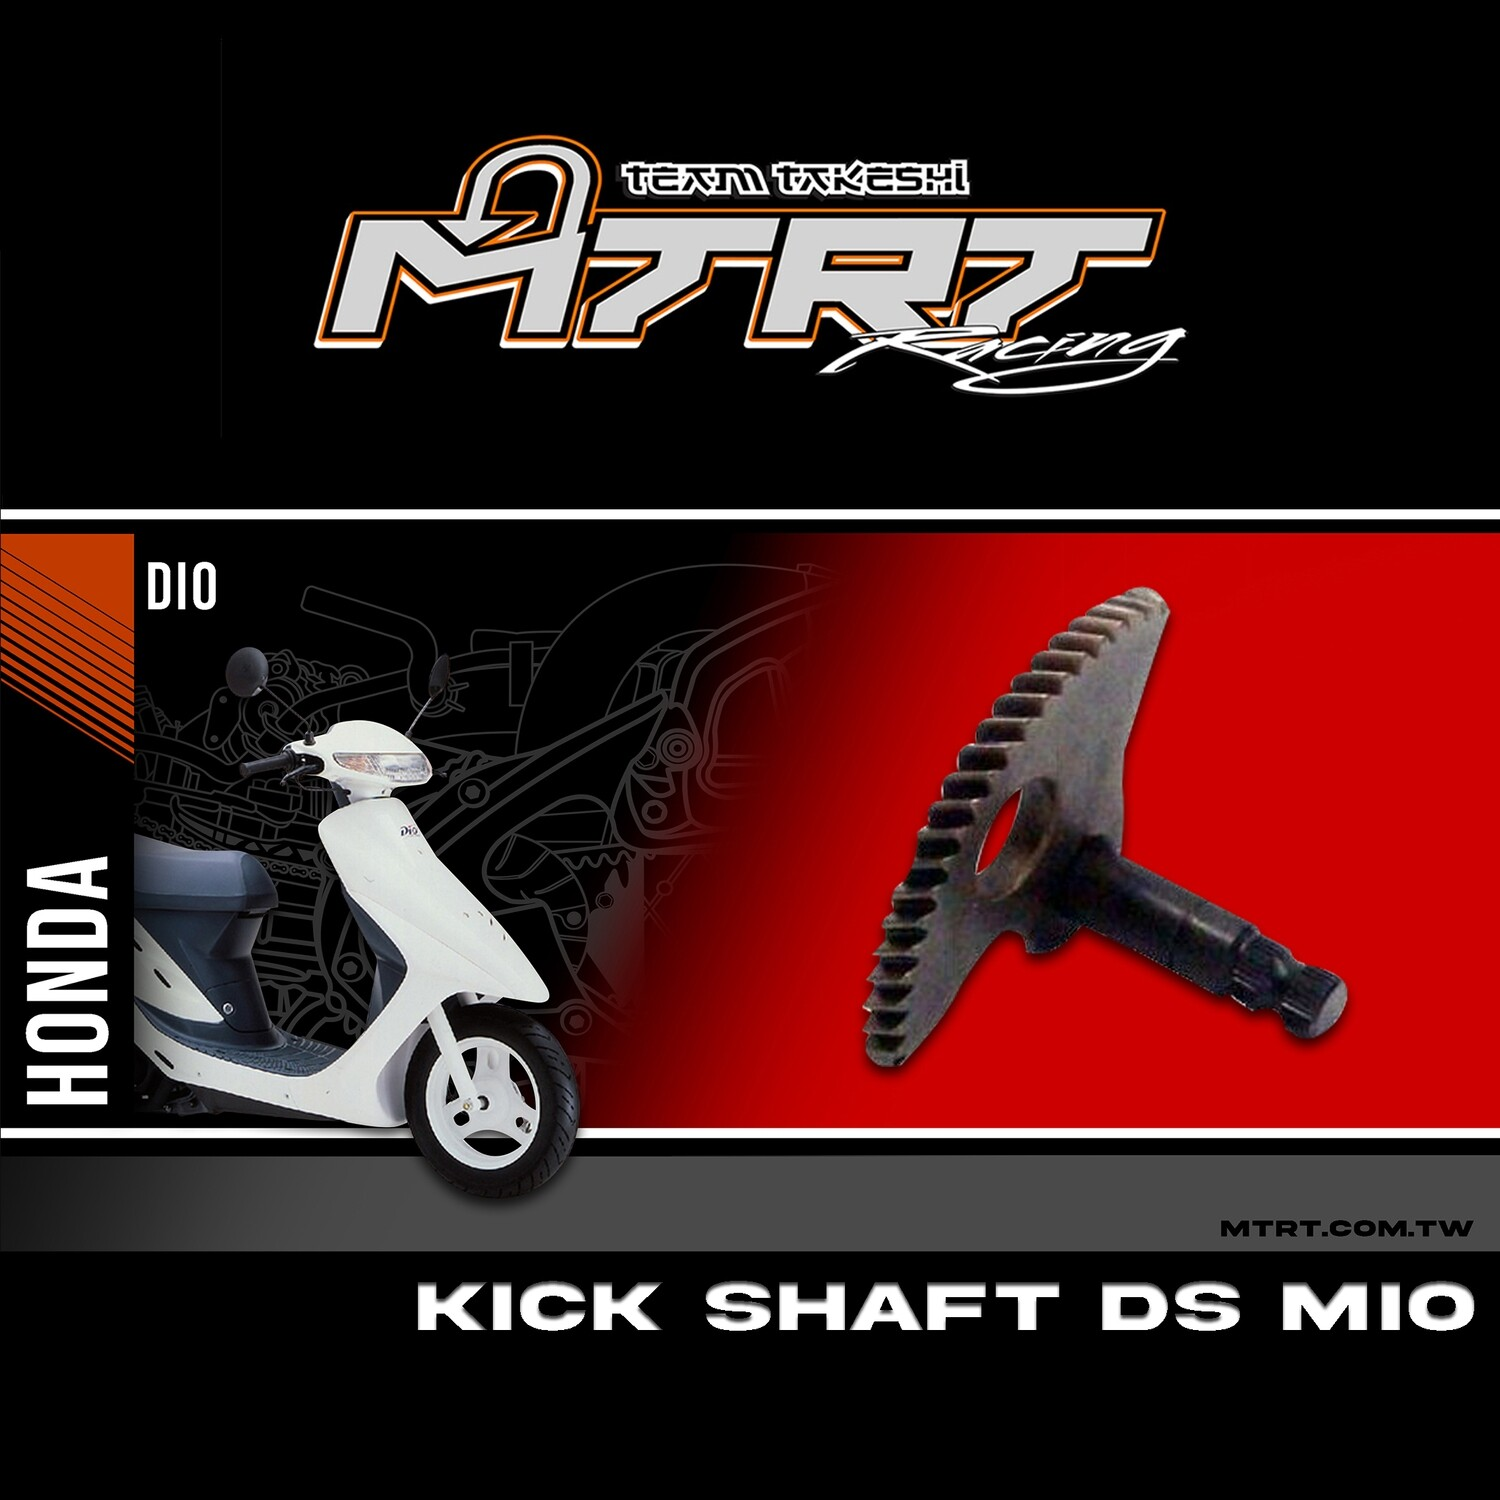 KICK SHAFT DS MIO